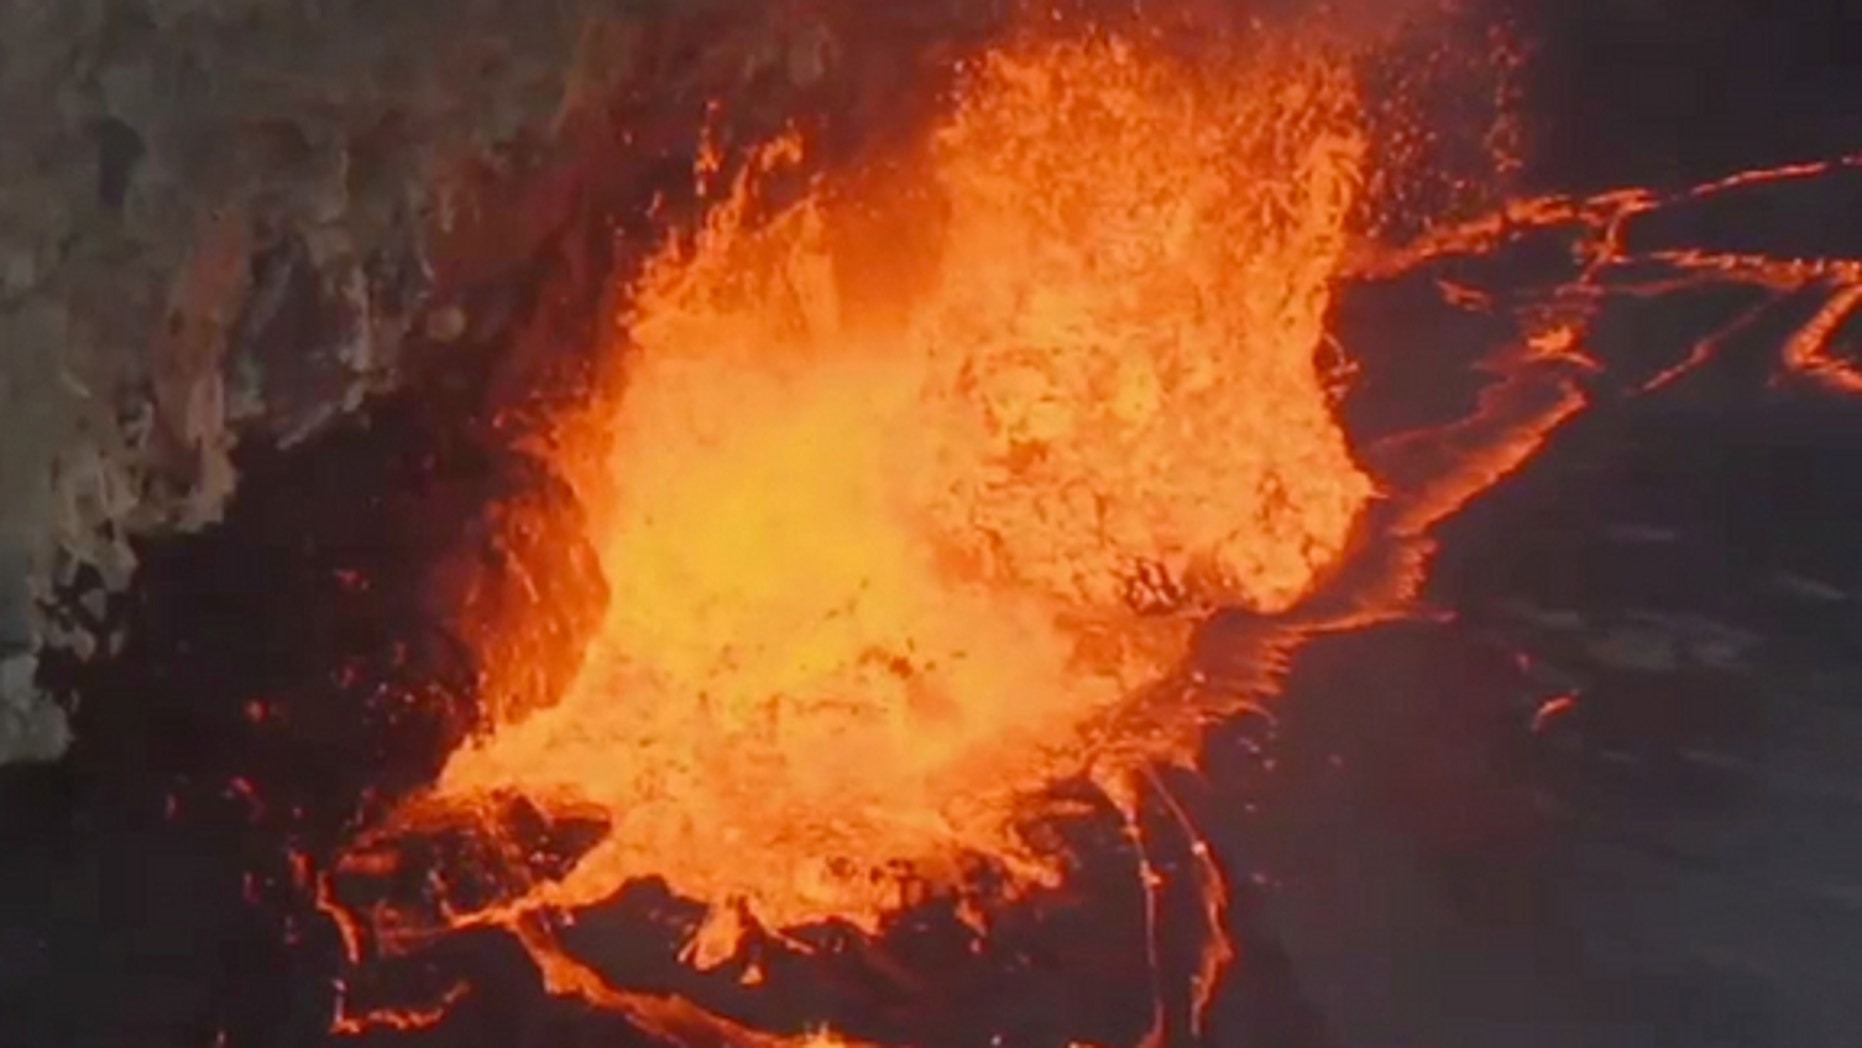 Rapid global warming has caused an increase in volcanic eruptions in the past, a new study finds